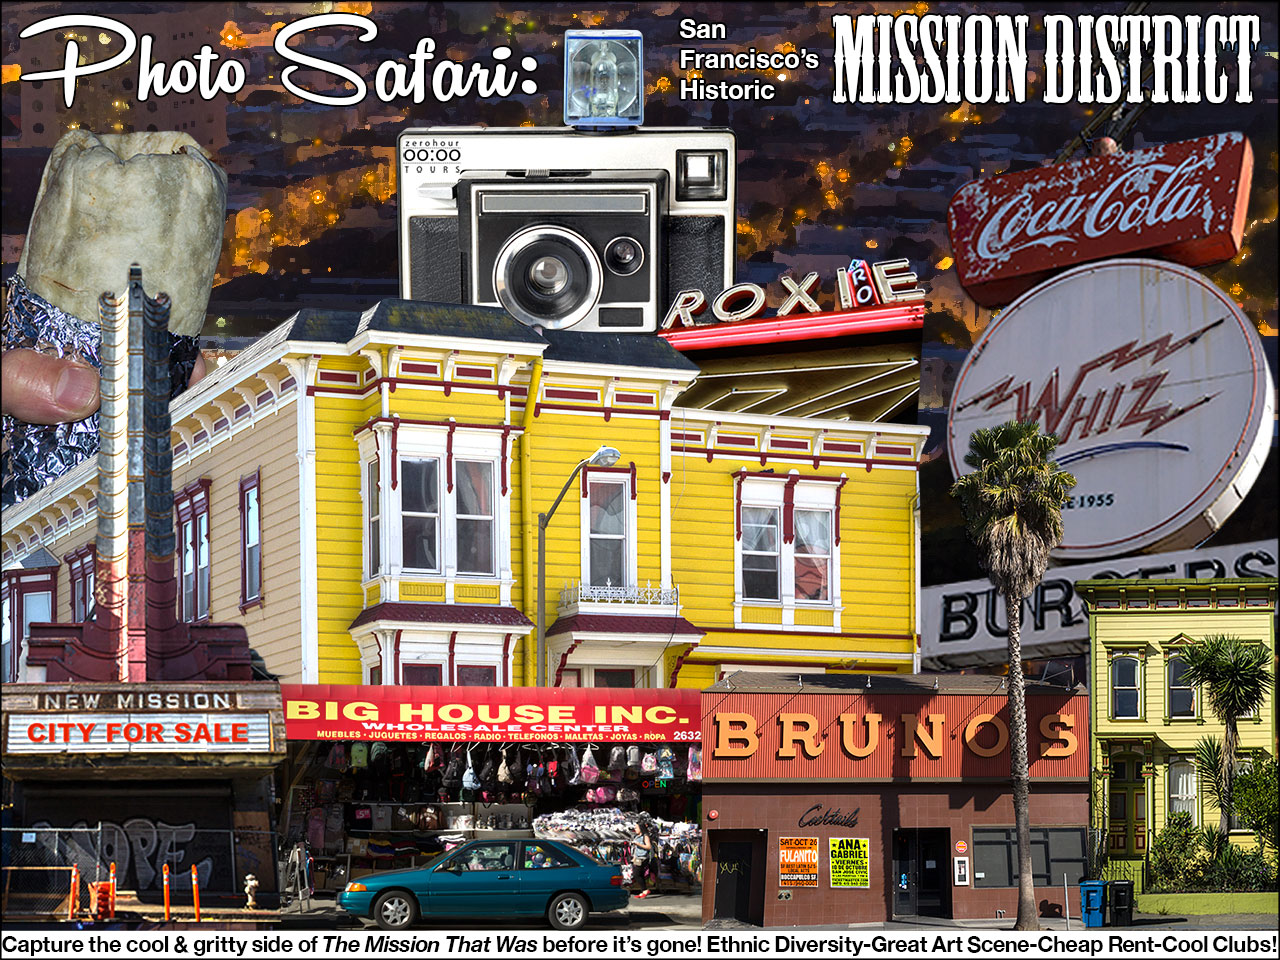 Mission District Photo Safari